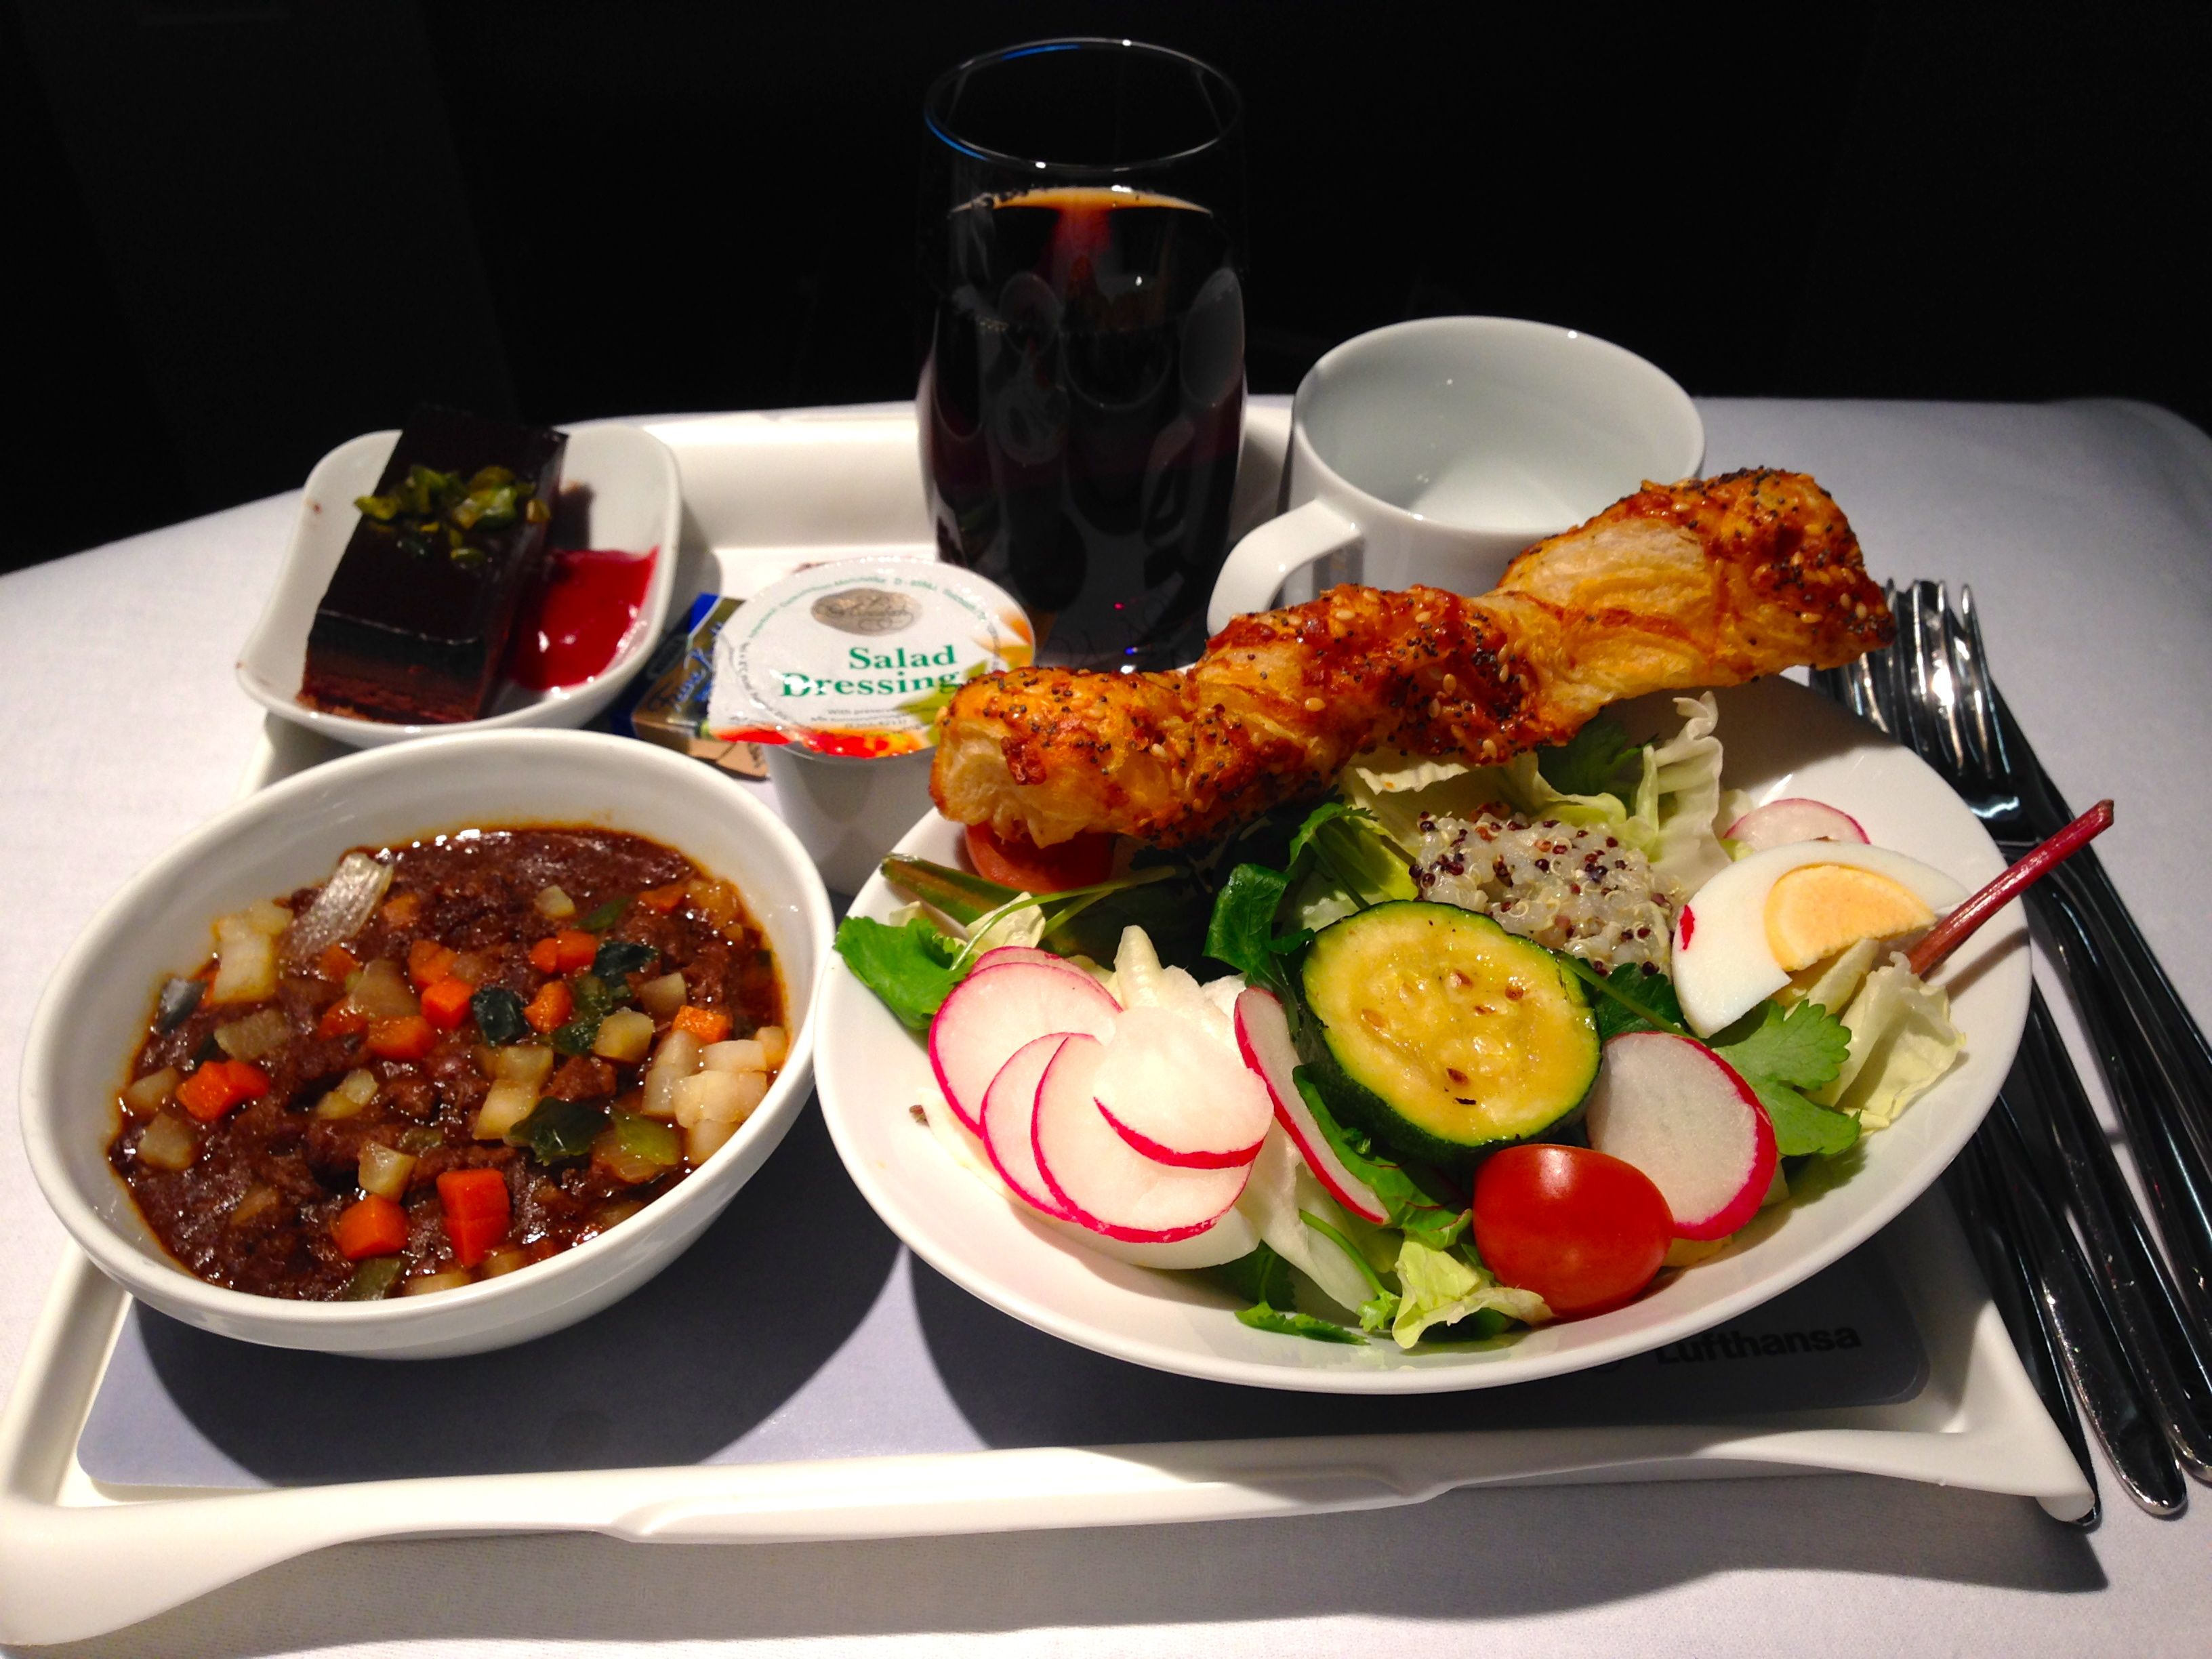 Thalys Food Service First Class